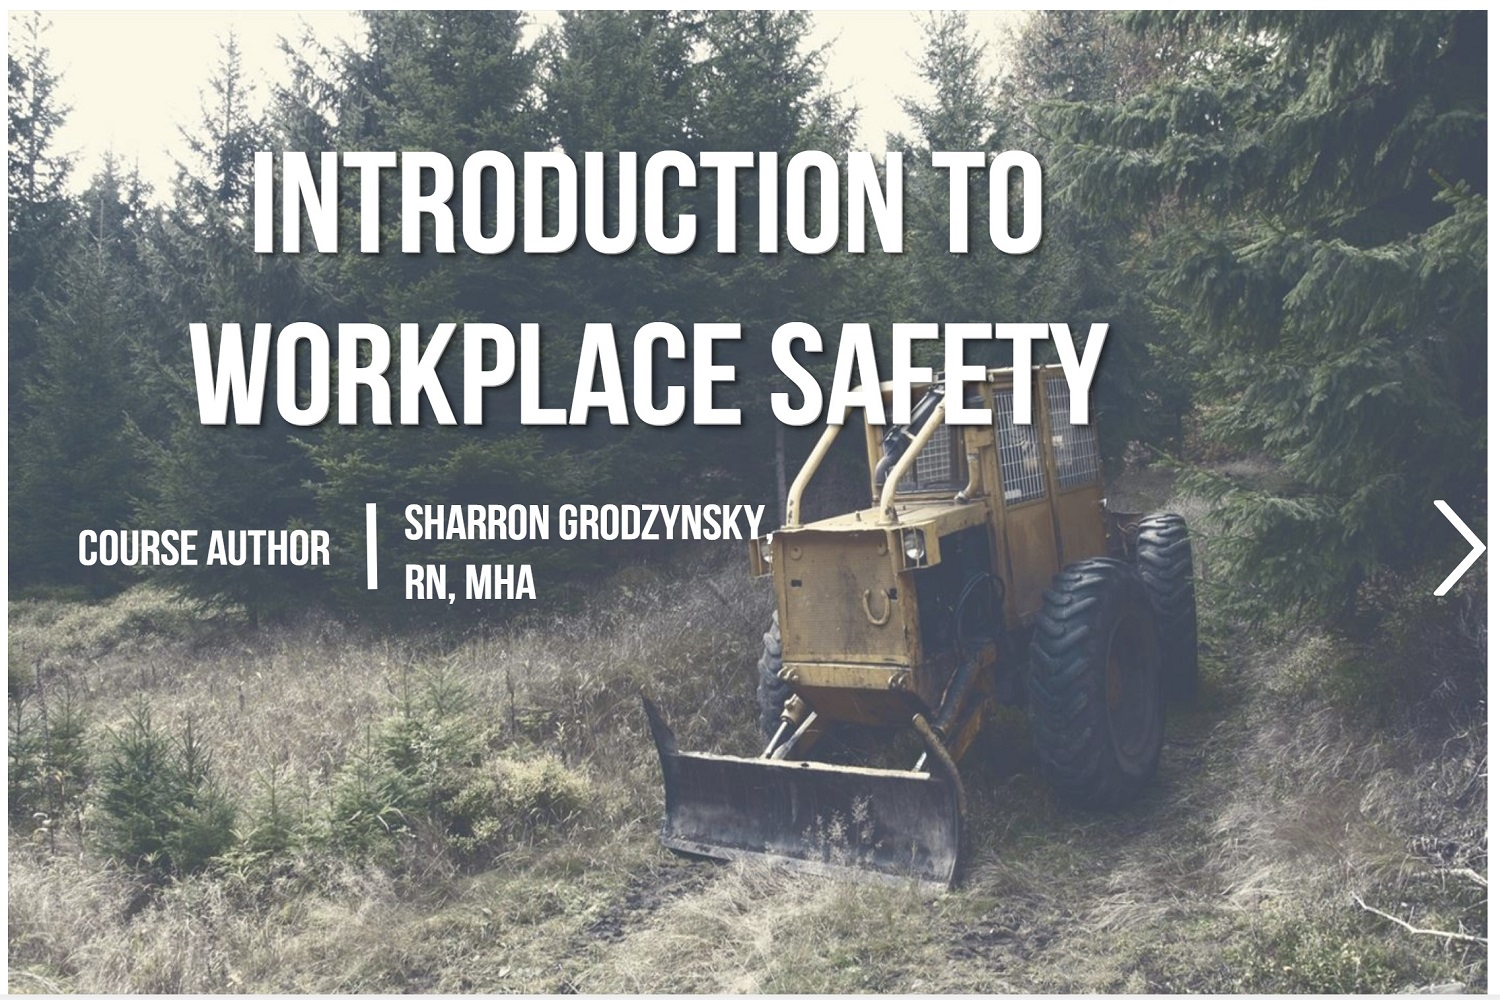 Introduction to Workplace Safety image